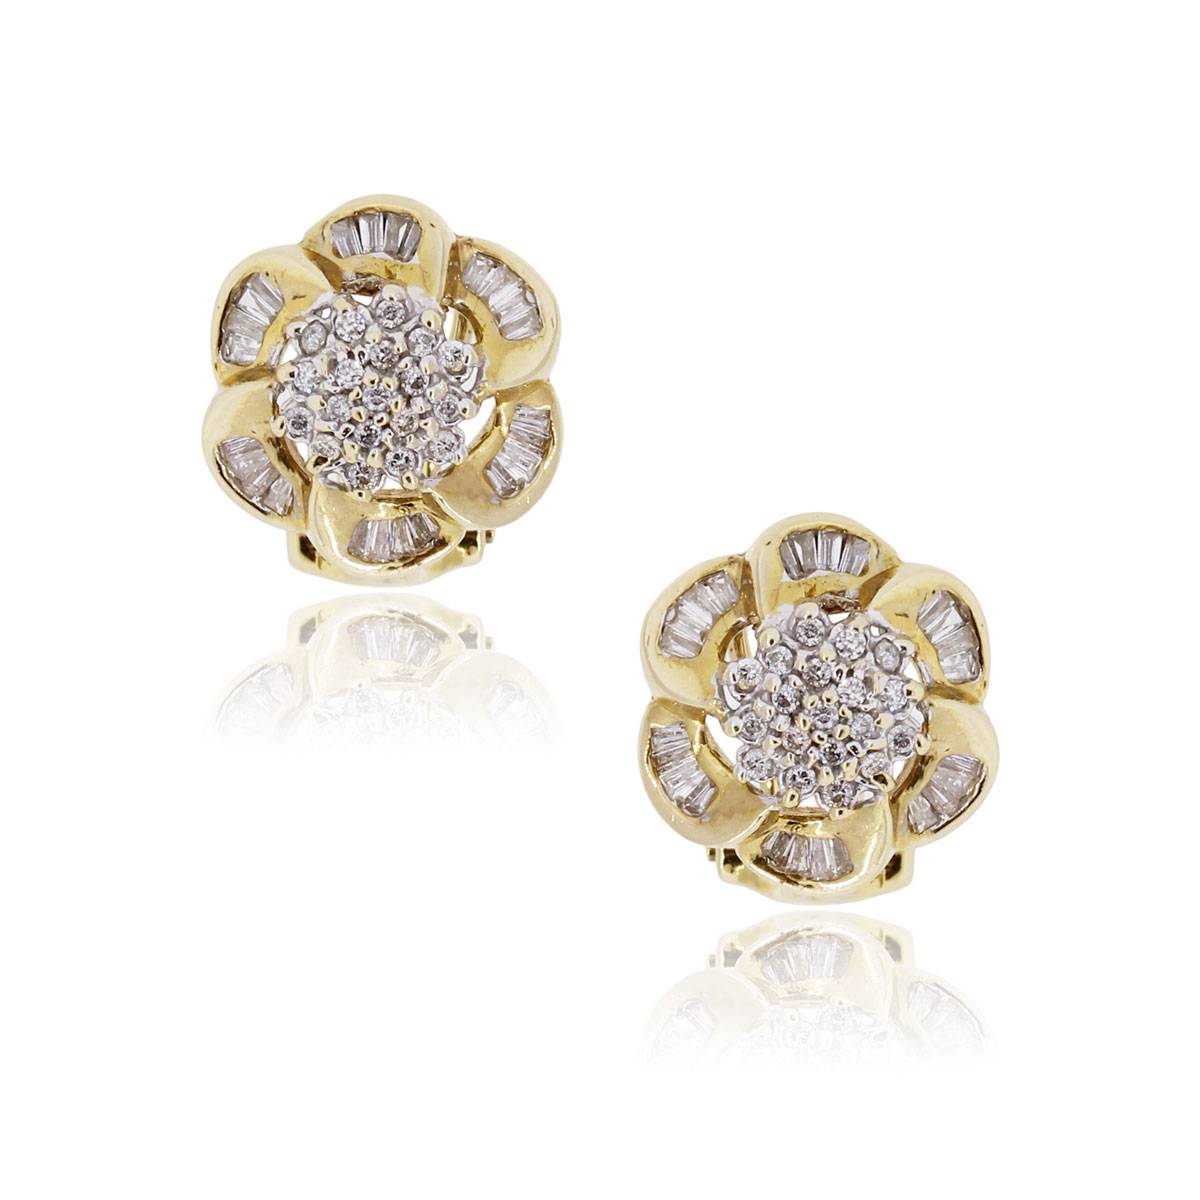 14k Yellow Gold Diamond Flower Earrings 0.80ct Round Diamonds Gold And Diamonds